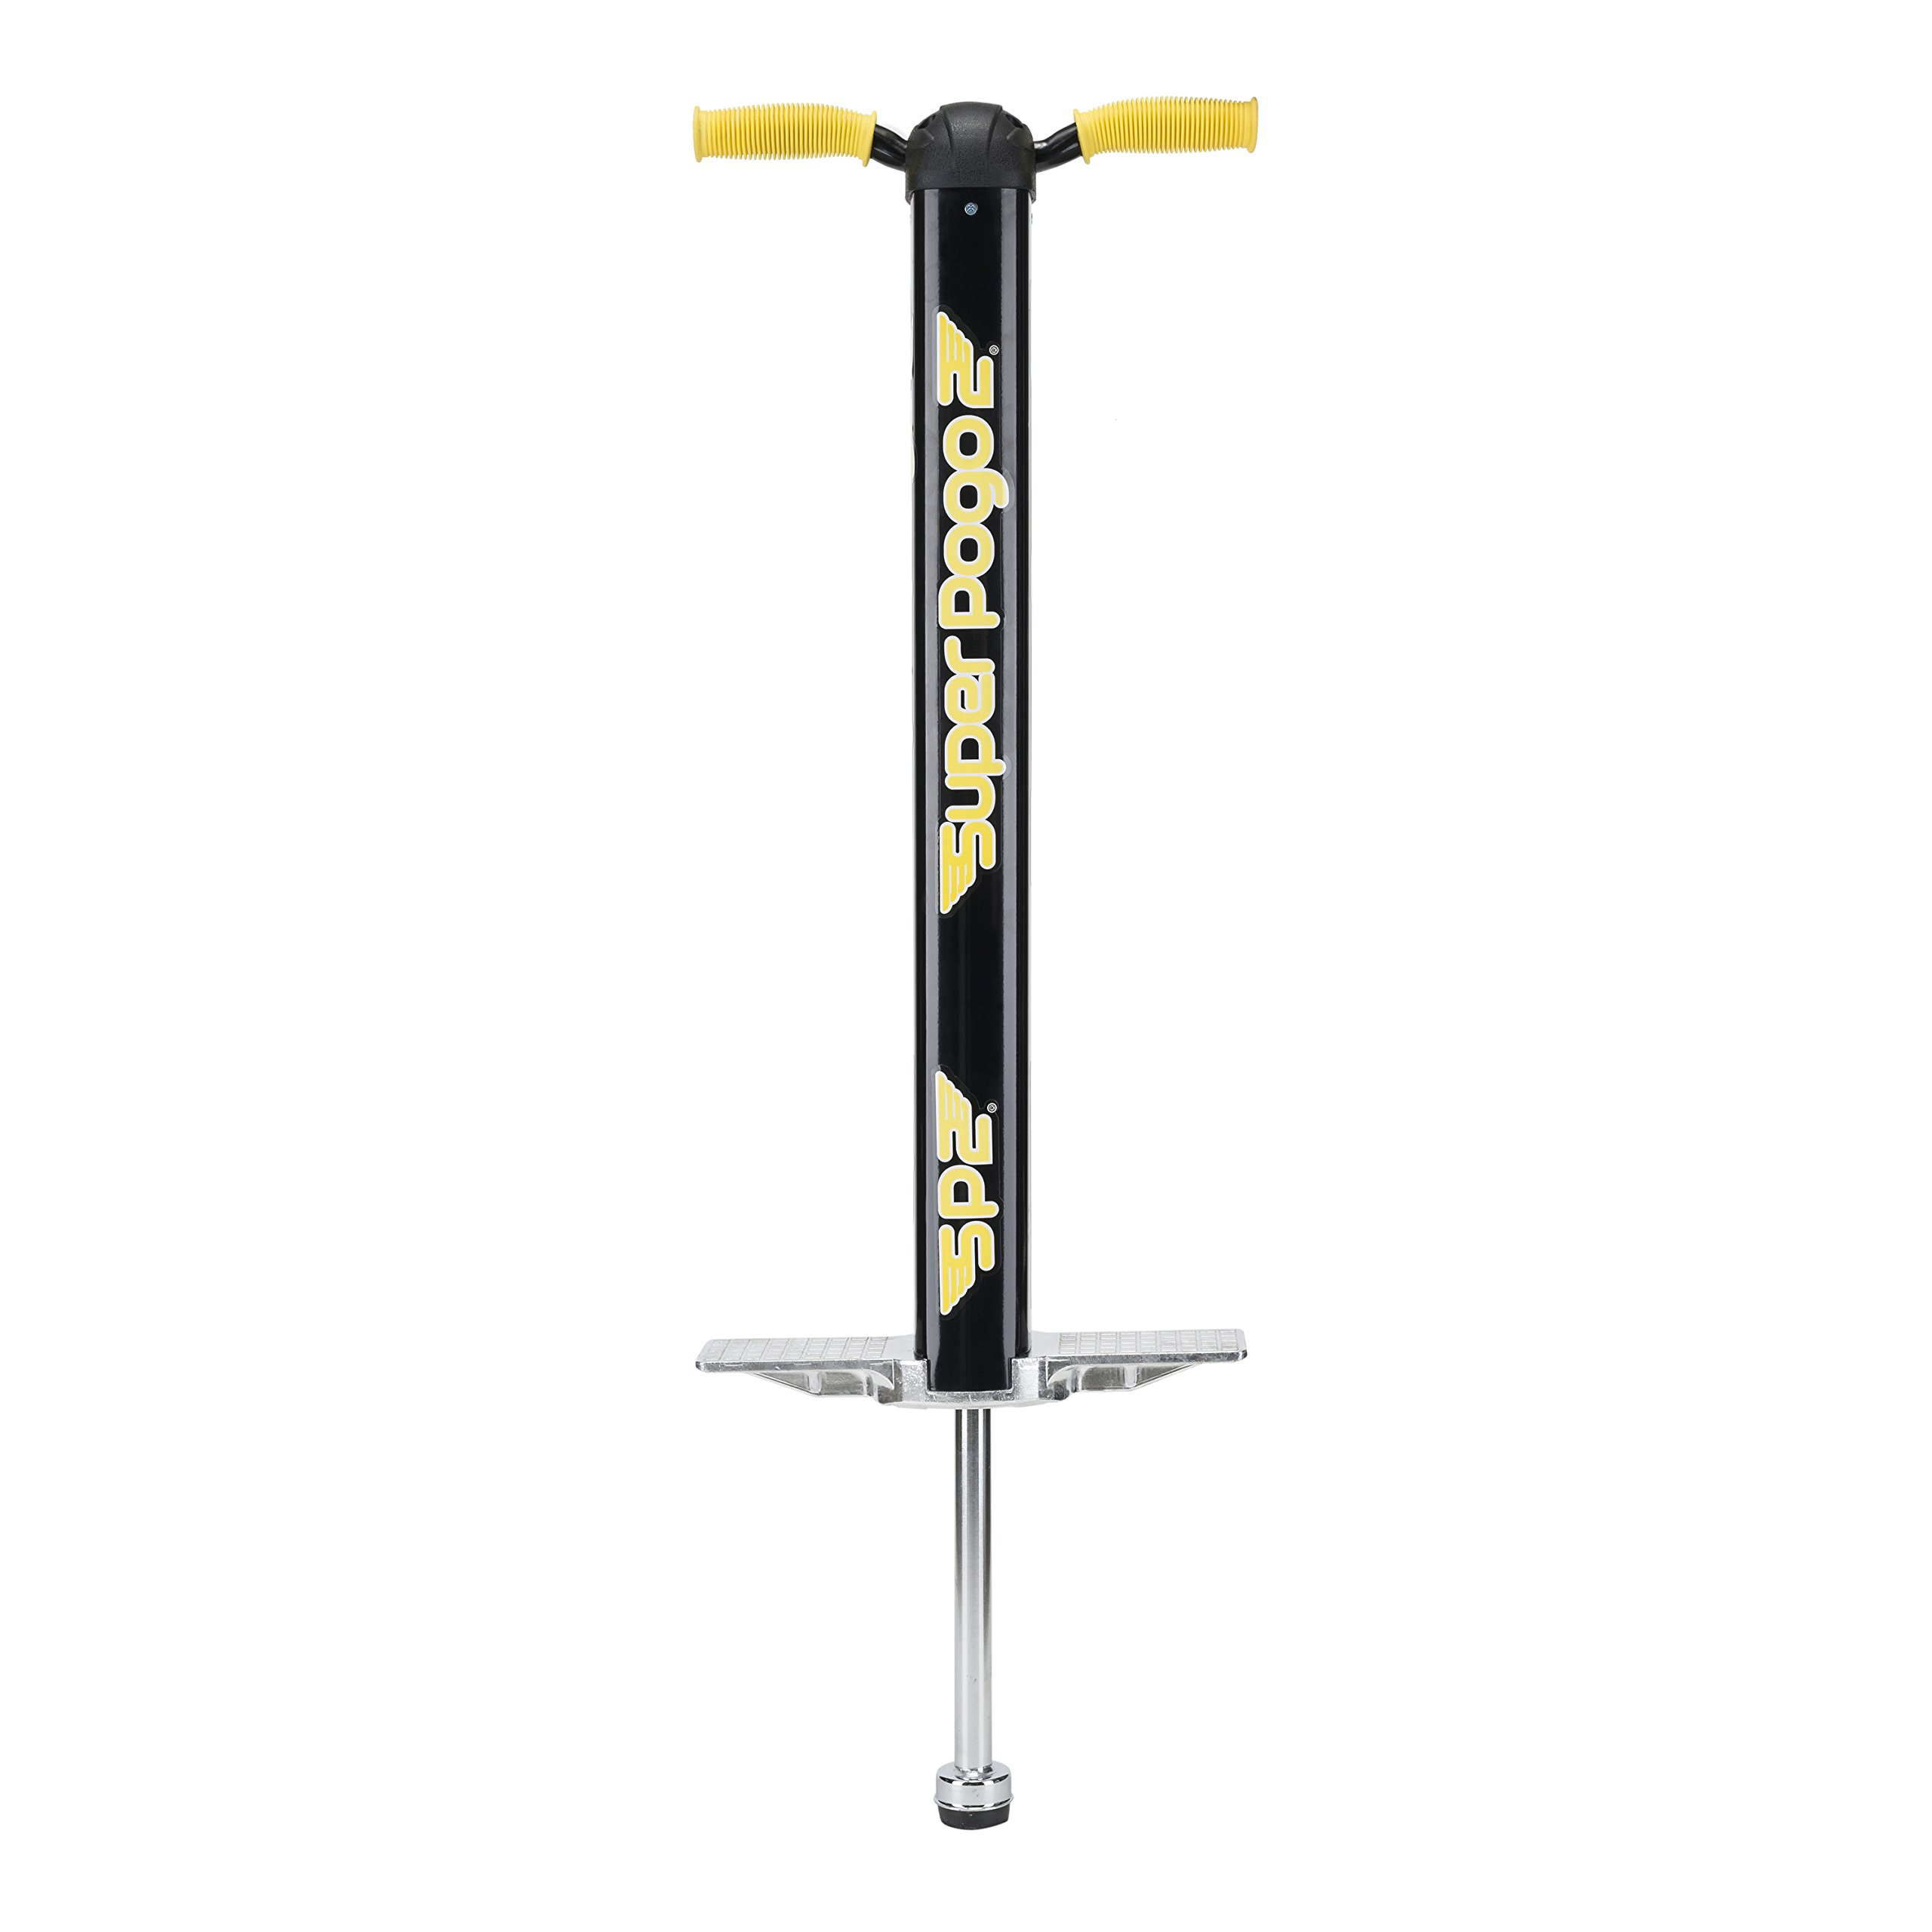 Flybar Super Pogo 2 - Pogo Stick for Kids and Adults 14 & Up Heavy Duty for Weights 90-200 Lbs by Flybar